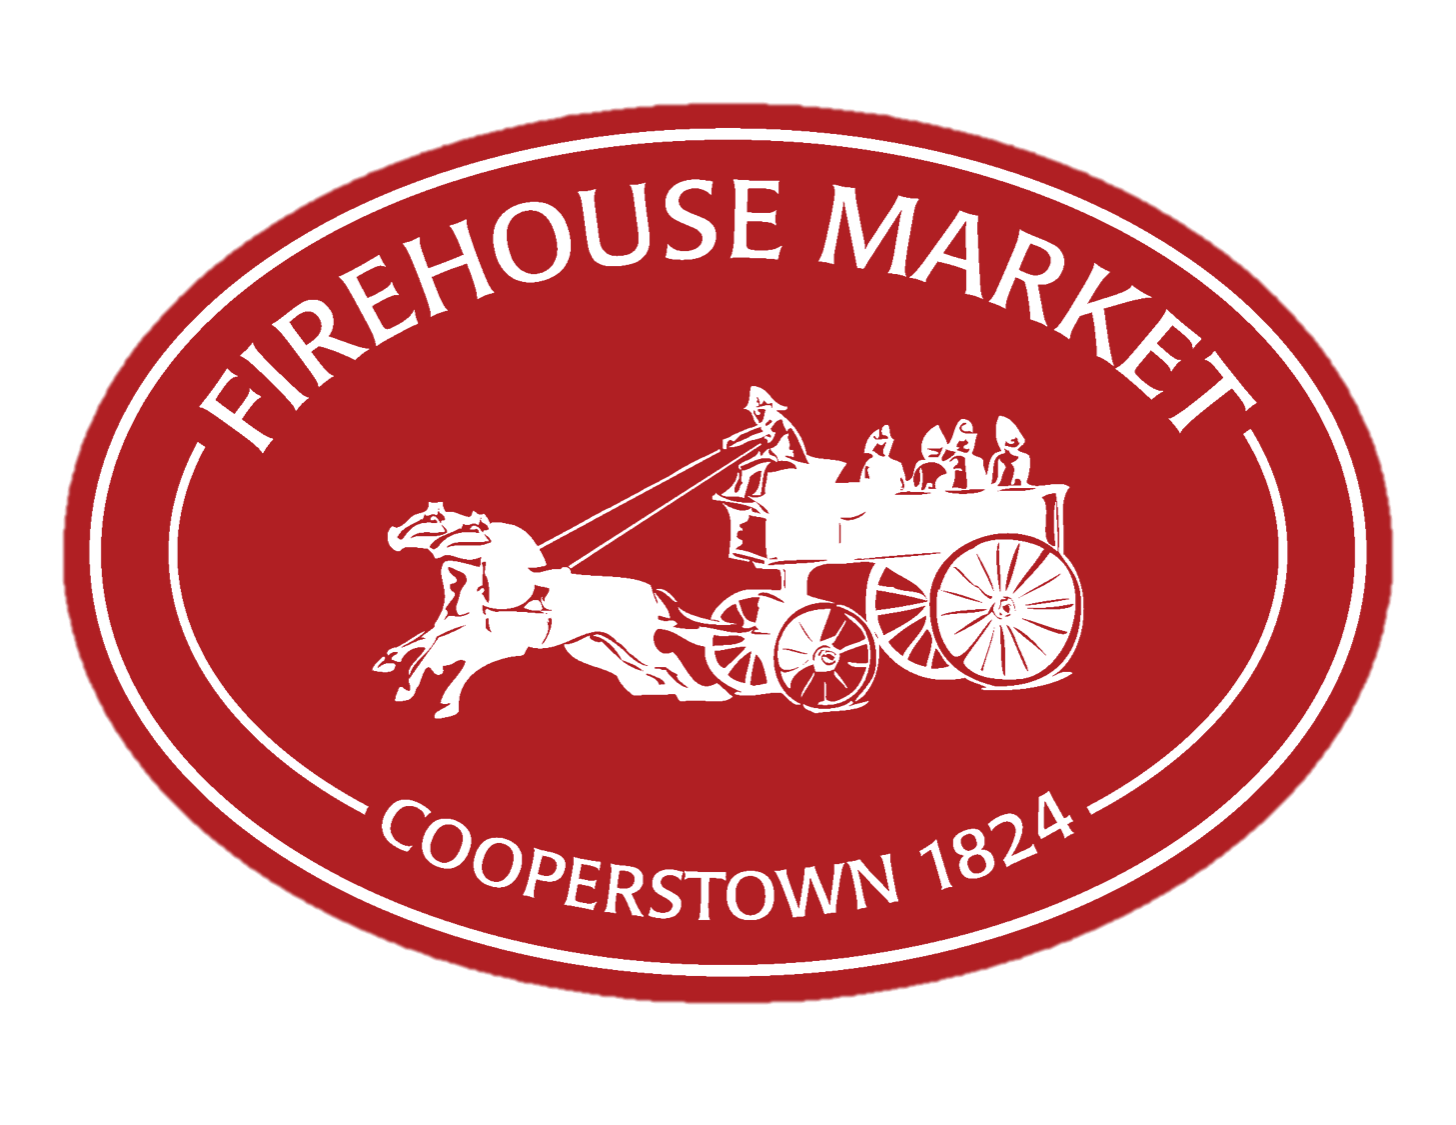 The Firehouse Market